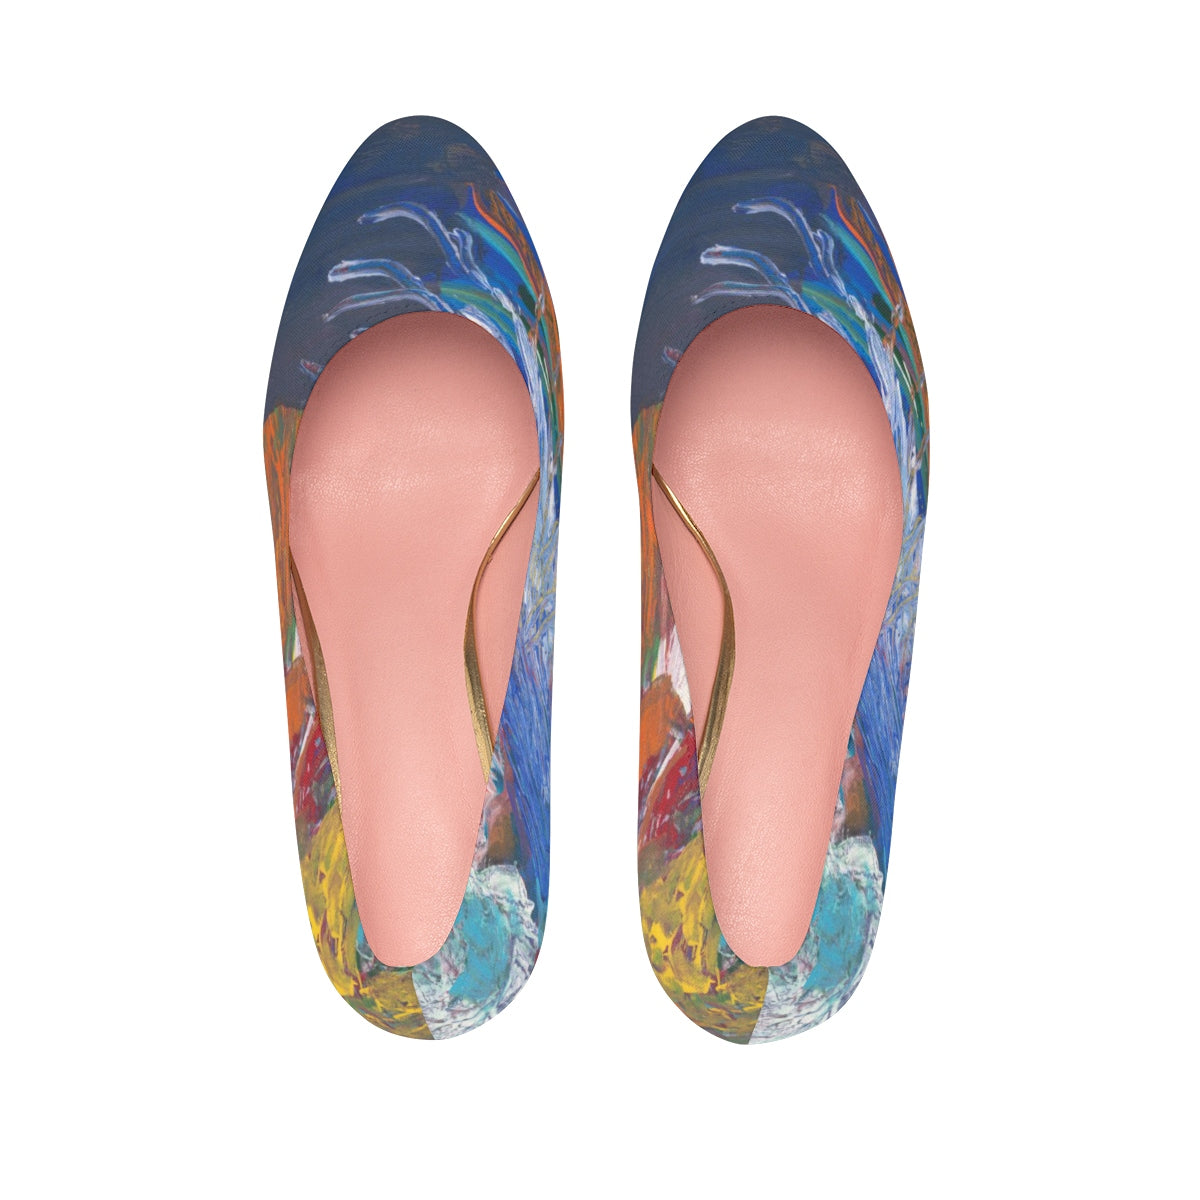 SEA LIFE  Women's Platform Heels  SIZES  5 - 11